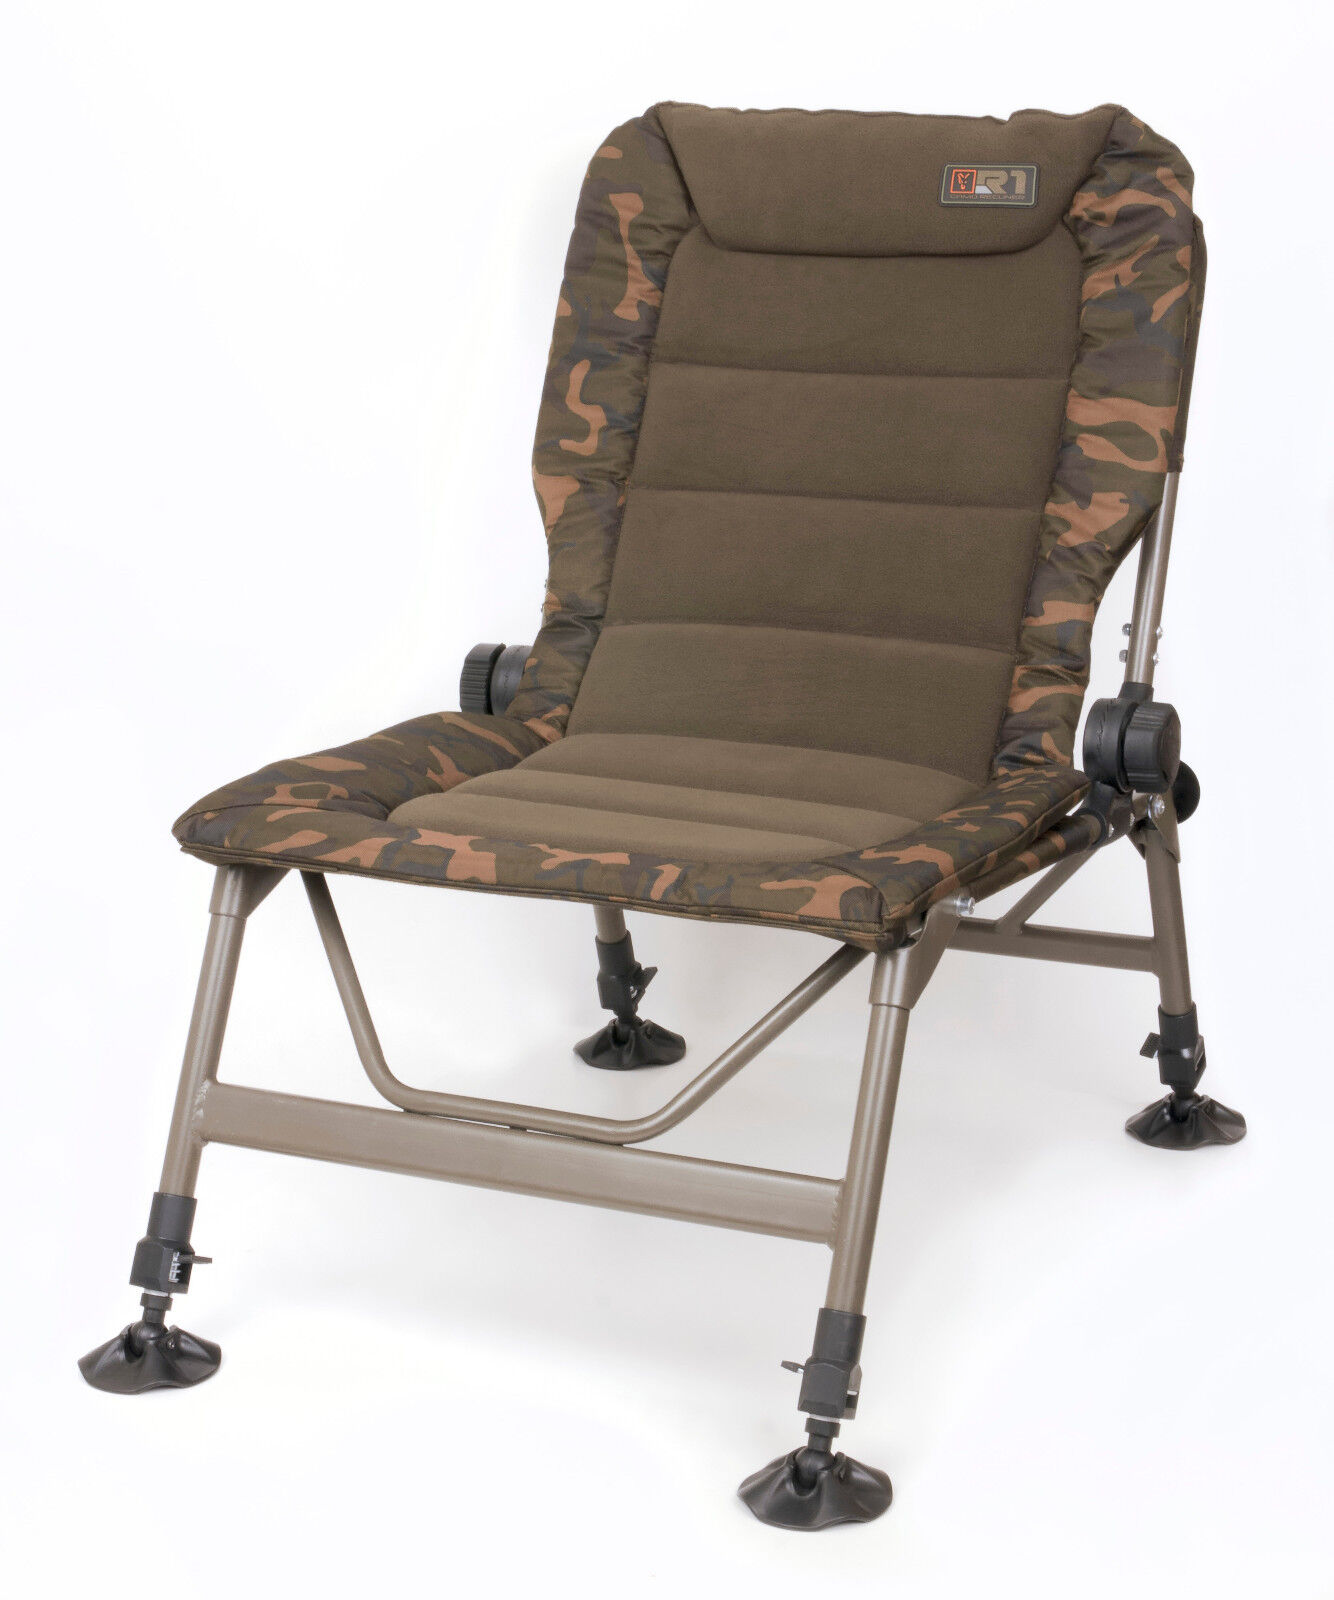 Fox  R1 Camo Chair CBC060 Karpfenstuhl Carpchair Angelstuhl Stuhl Anglerstuhl  outlet store